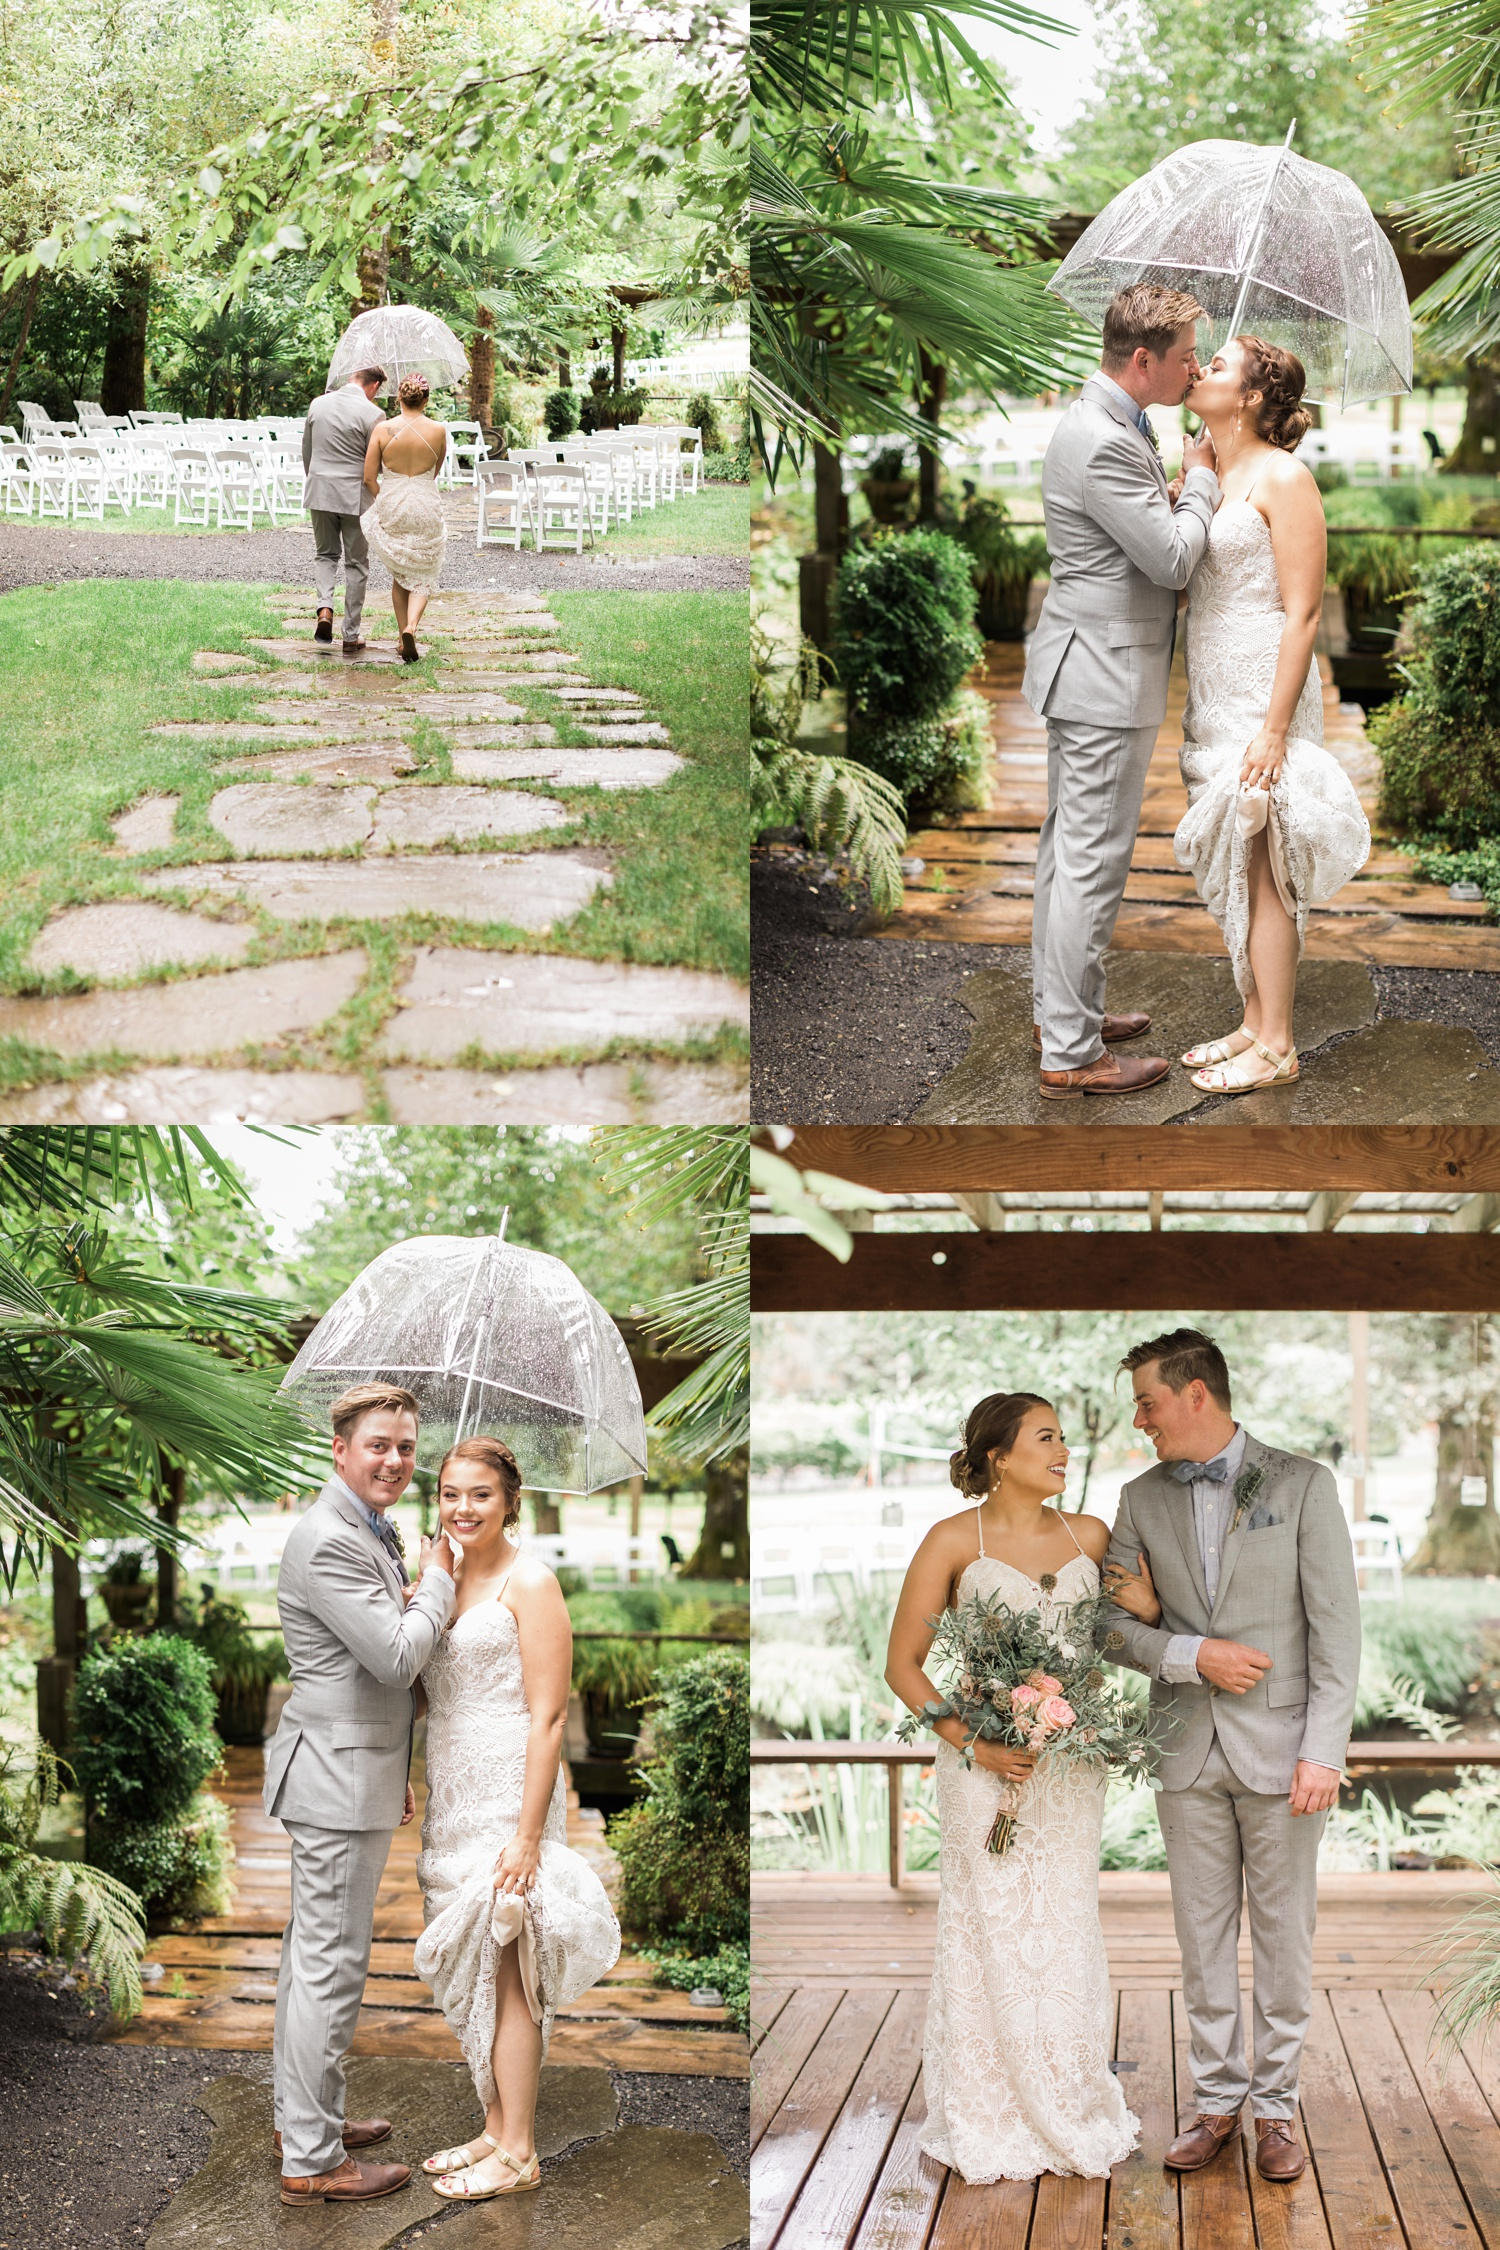 A bride and groom get caught in the rain before their summer wedding at Maroni Meadows in Snohomish, a wedding venue near Seattle, WA. | Joanna Monger Photography | Seattle & Snohomish Photographer